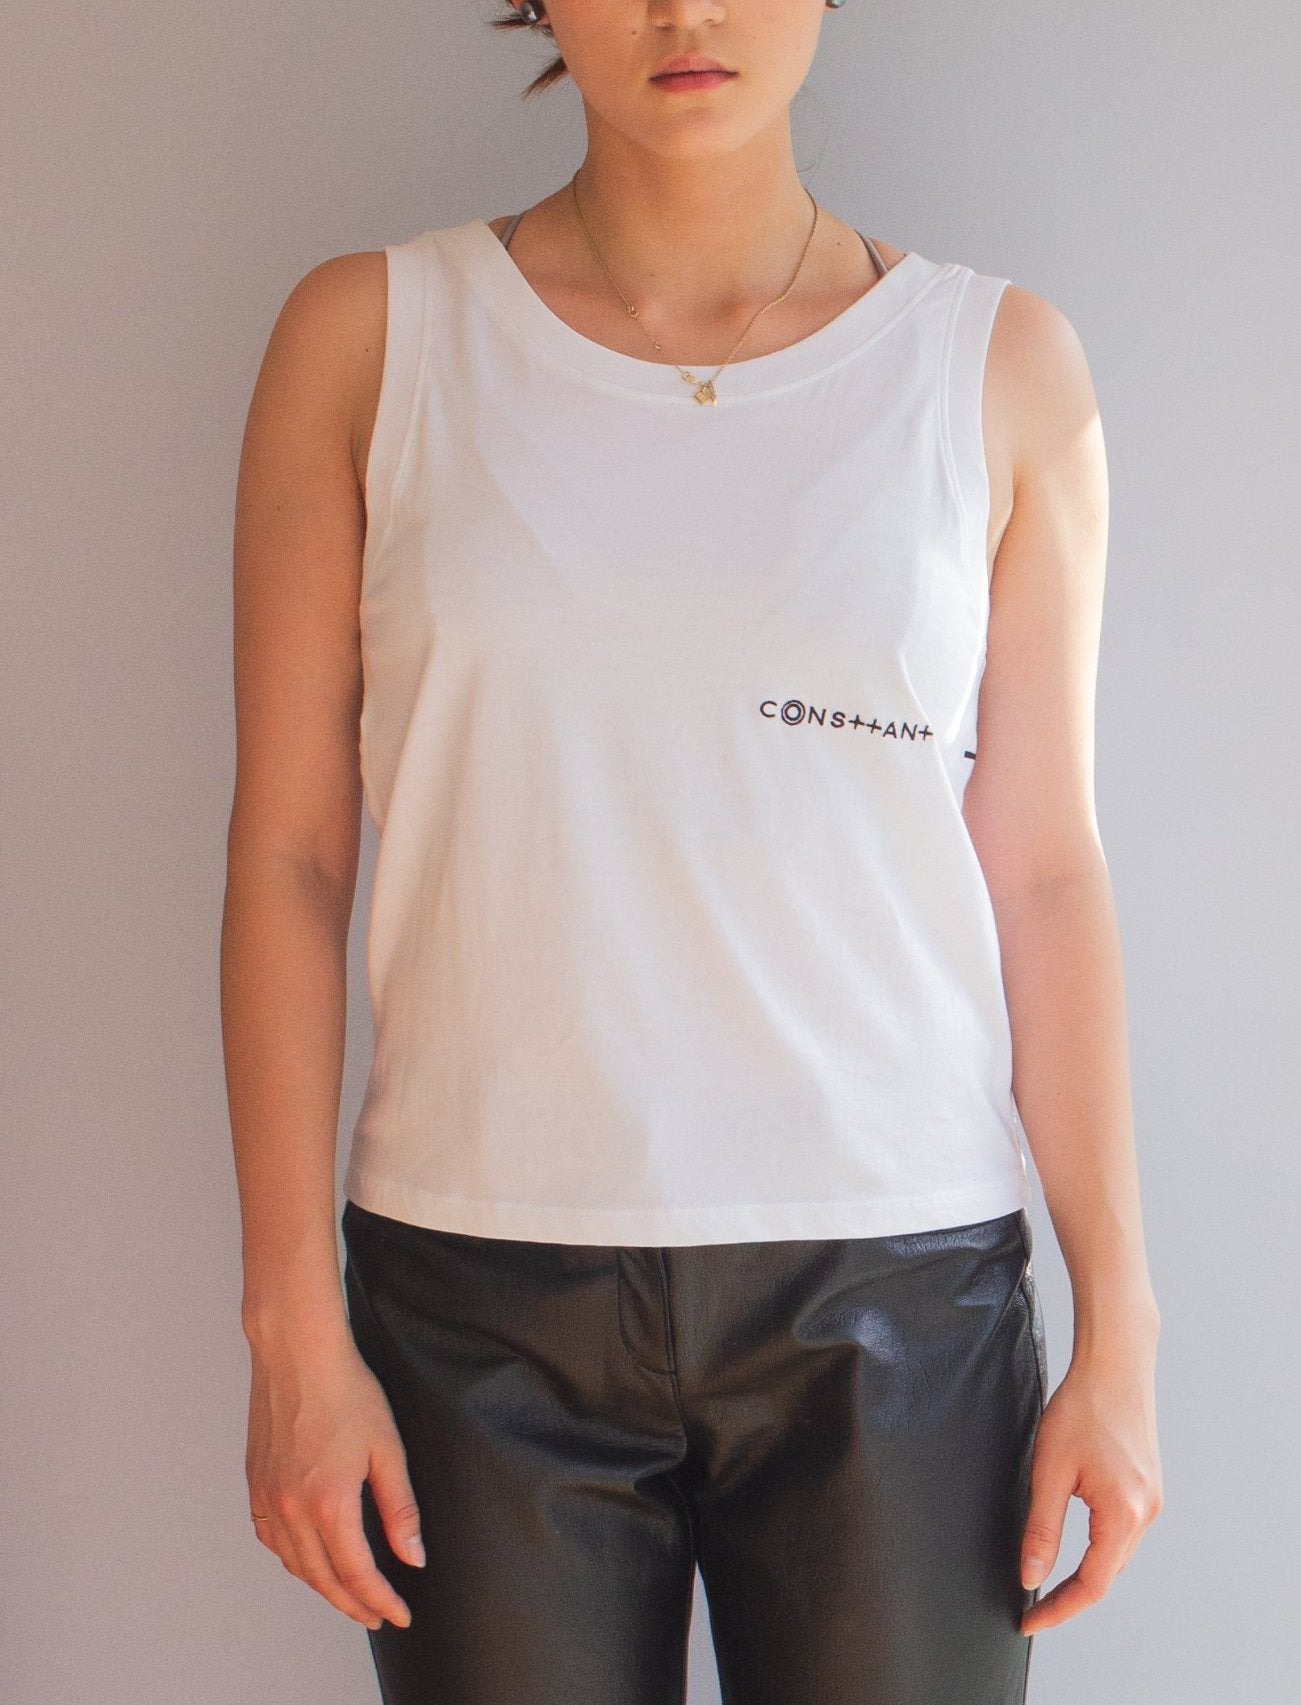 cotton knit womens tank top